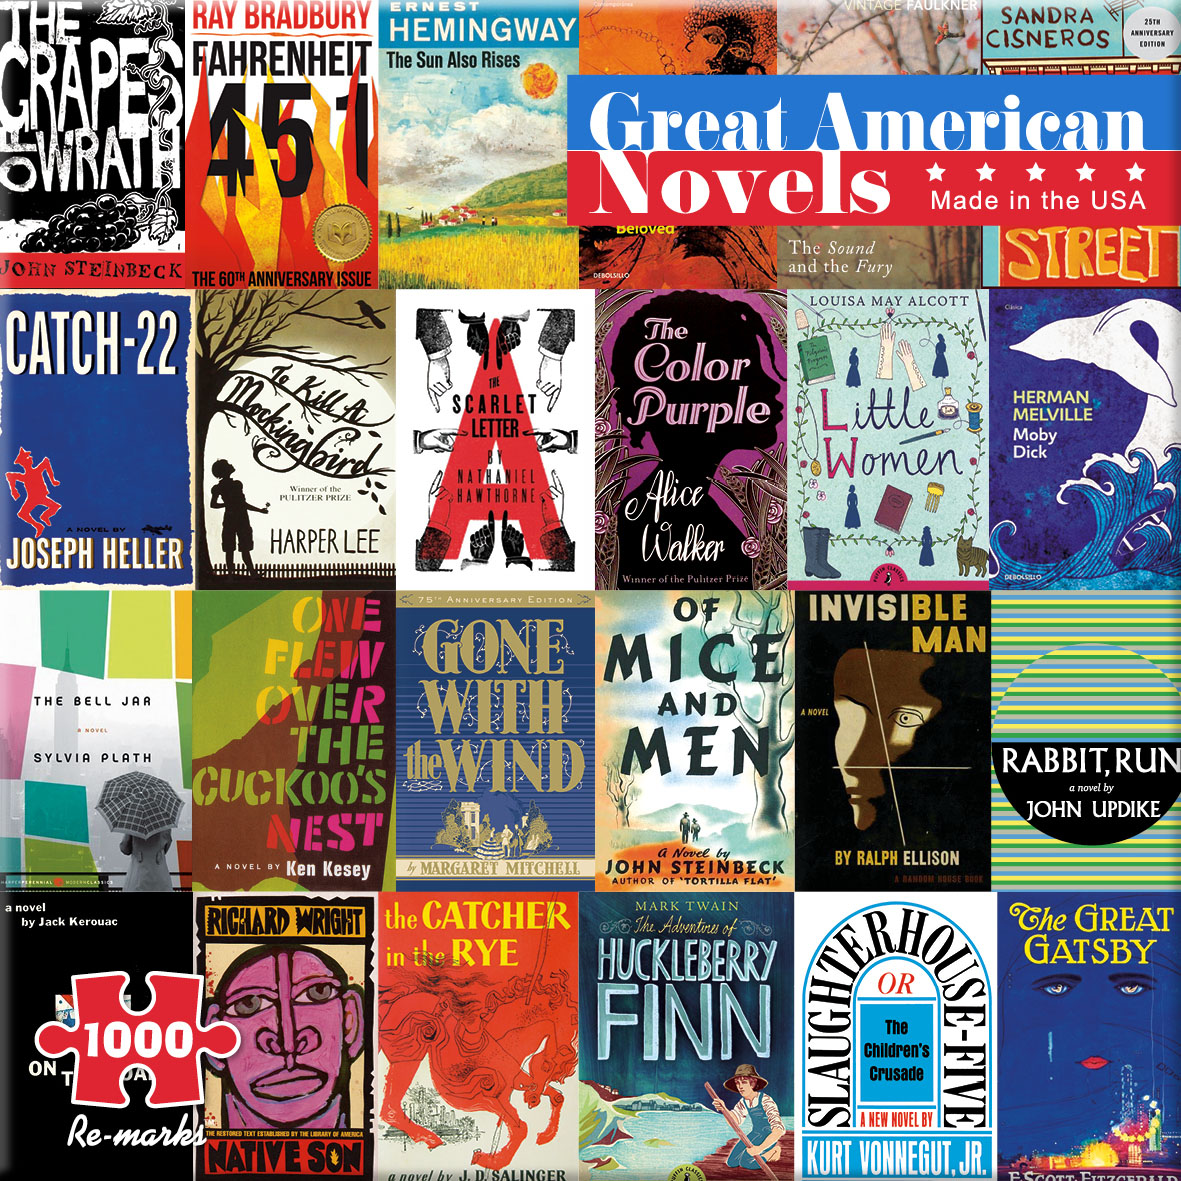 Great American Novels Movies / Books / TV Jigsaw Puzzle